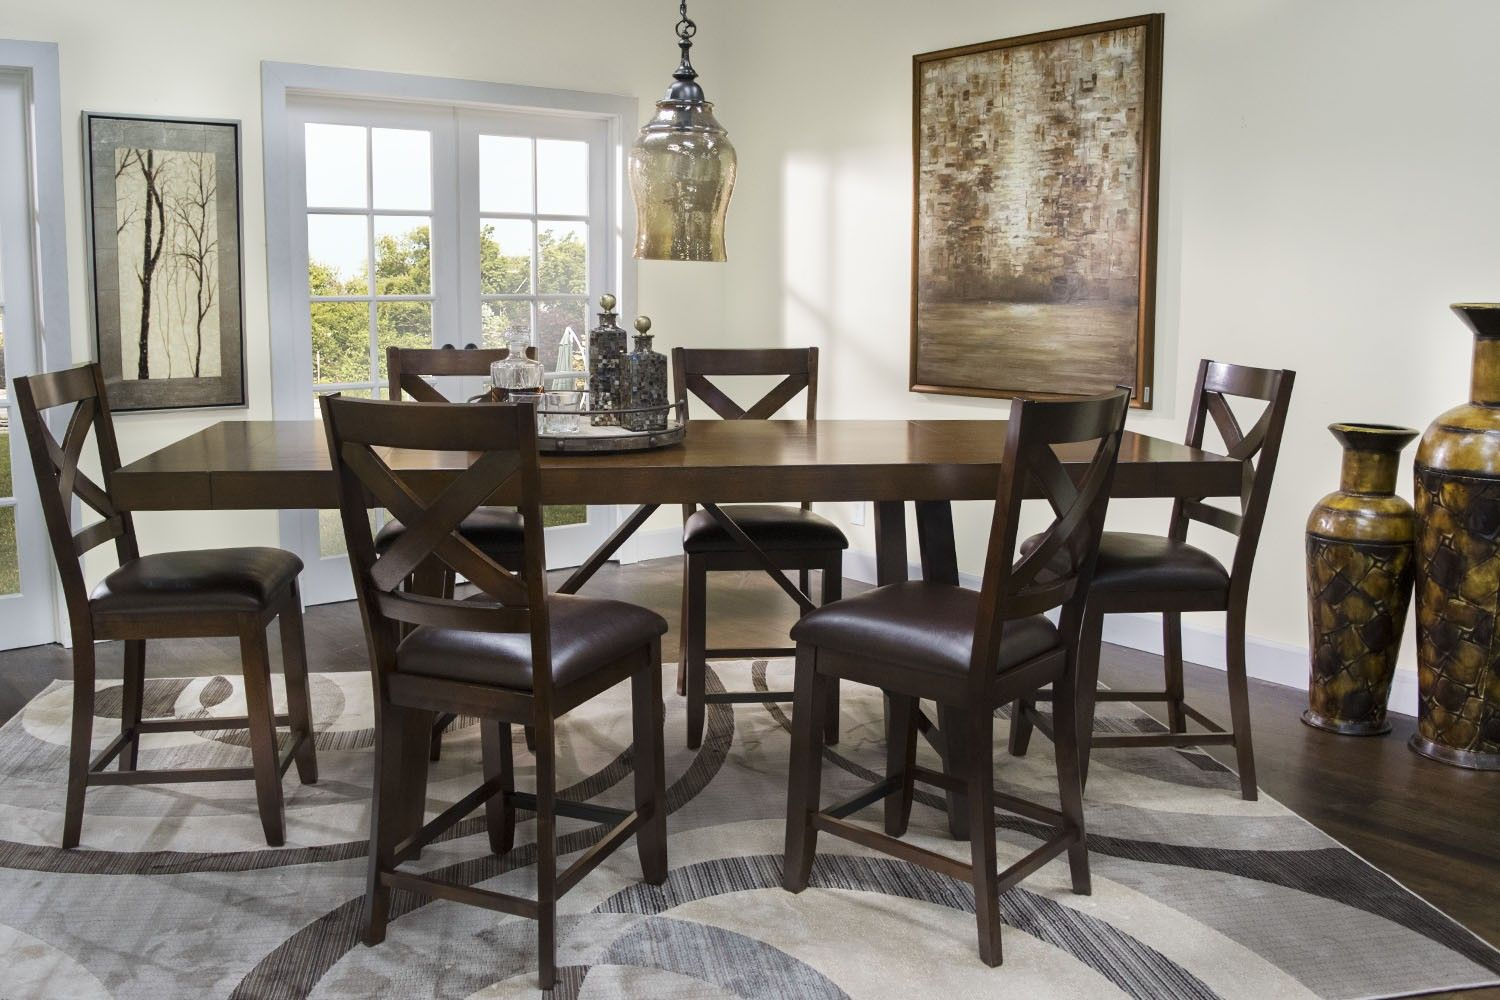 Kaylee Espresso Counter Table - Dining Tables - Dining Room   Mor Furniture  for Less   Home Decor   Pinterest   Espresso, Room and House - Kaylee Espresso Counter Table - Dining Tables - Dining Room Mor